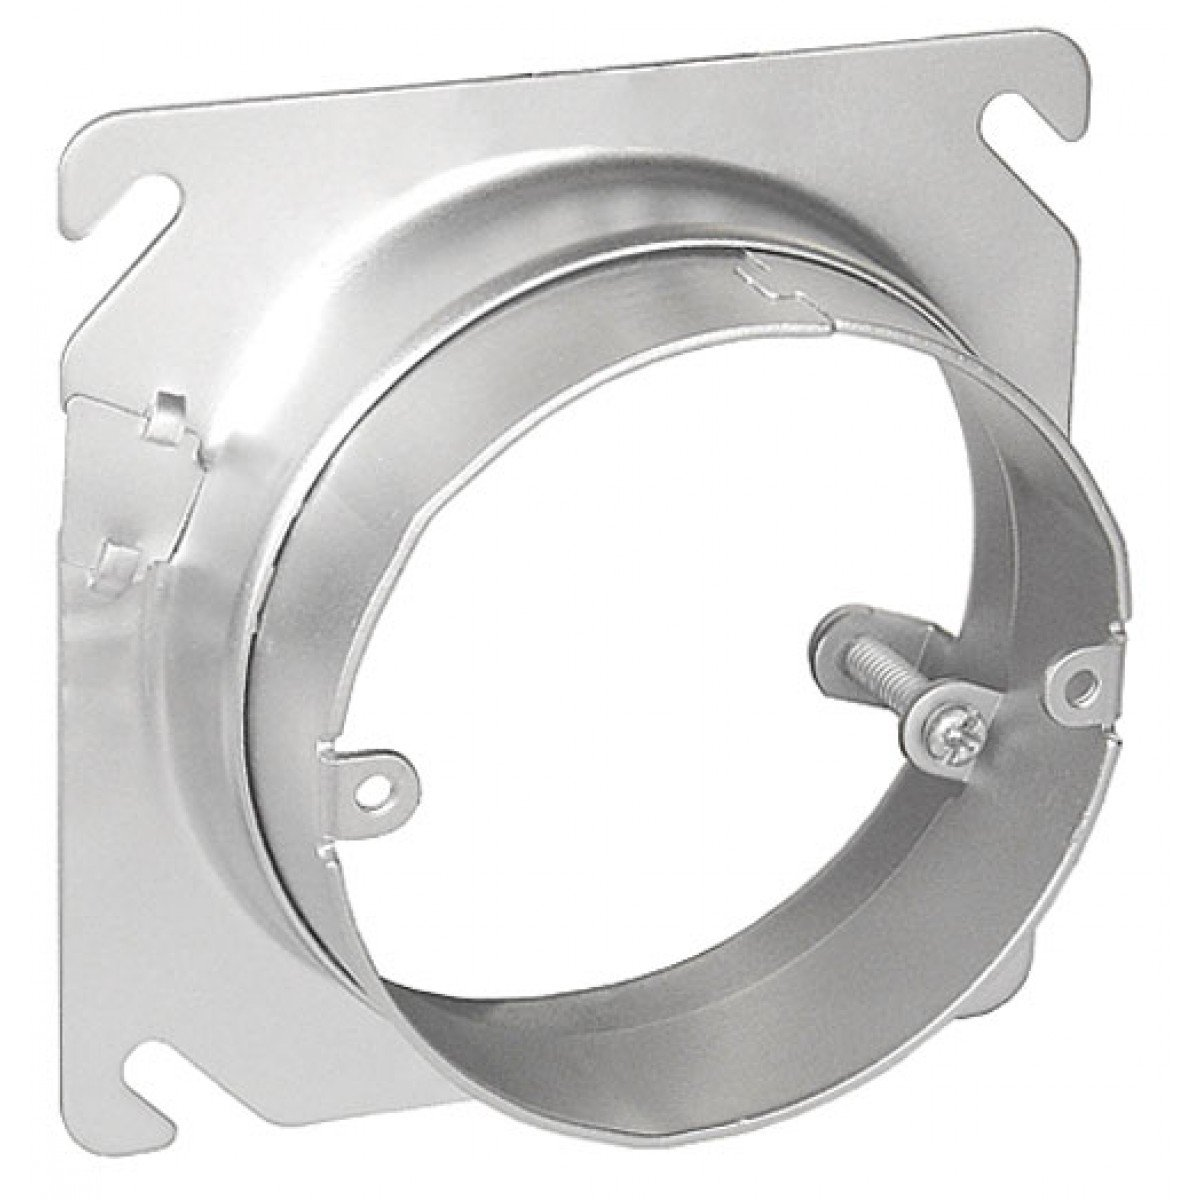 2 Pcs, 4 Square to Round Adjustable Depth Device Ring, 3/4 to 1-1/2 In. Raised, Zinc Plated Steel Used w/4 In Square Boxes Installed In Ceilings, Walls & Floors